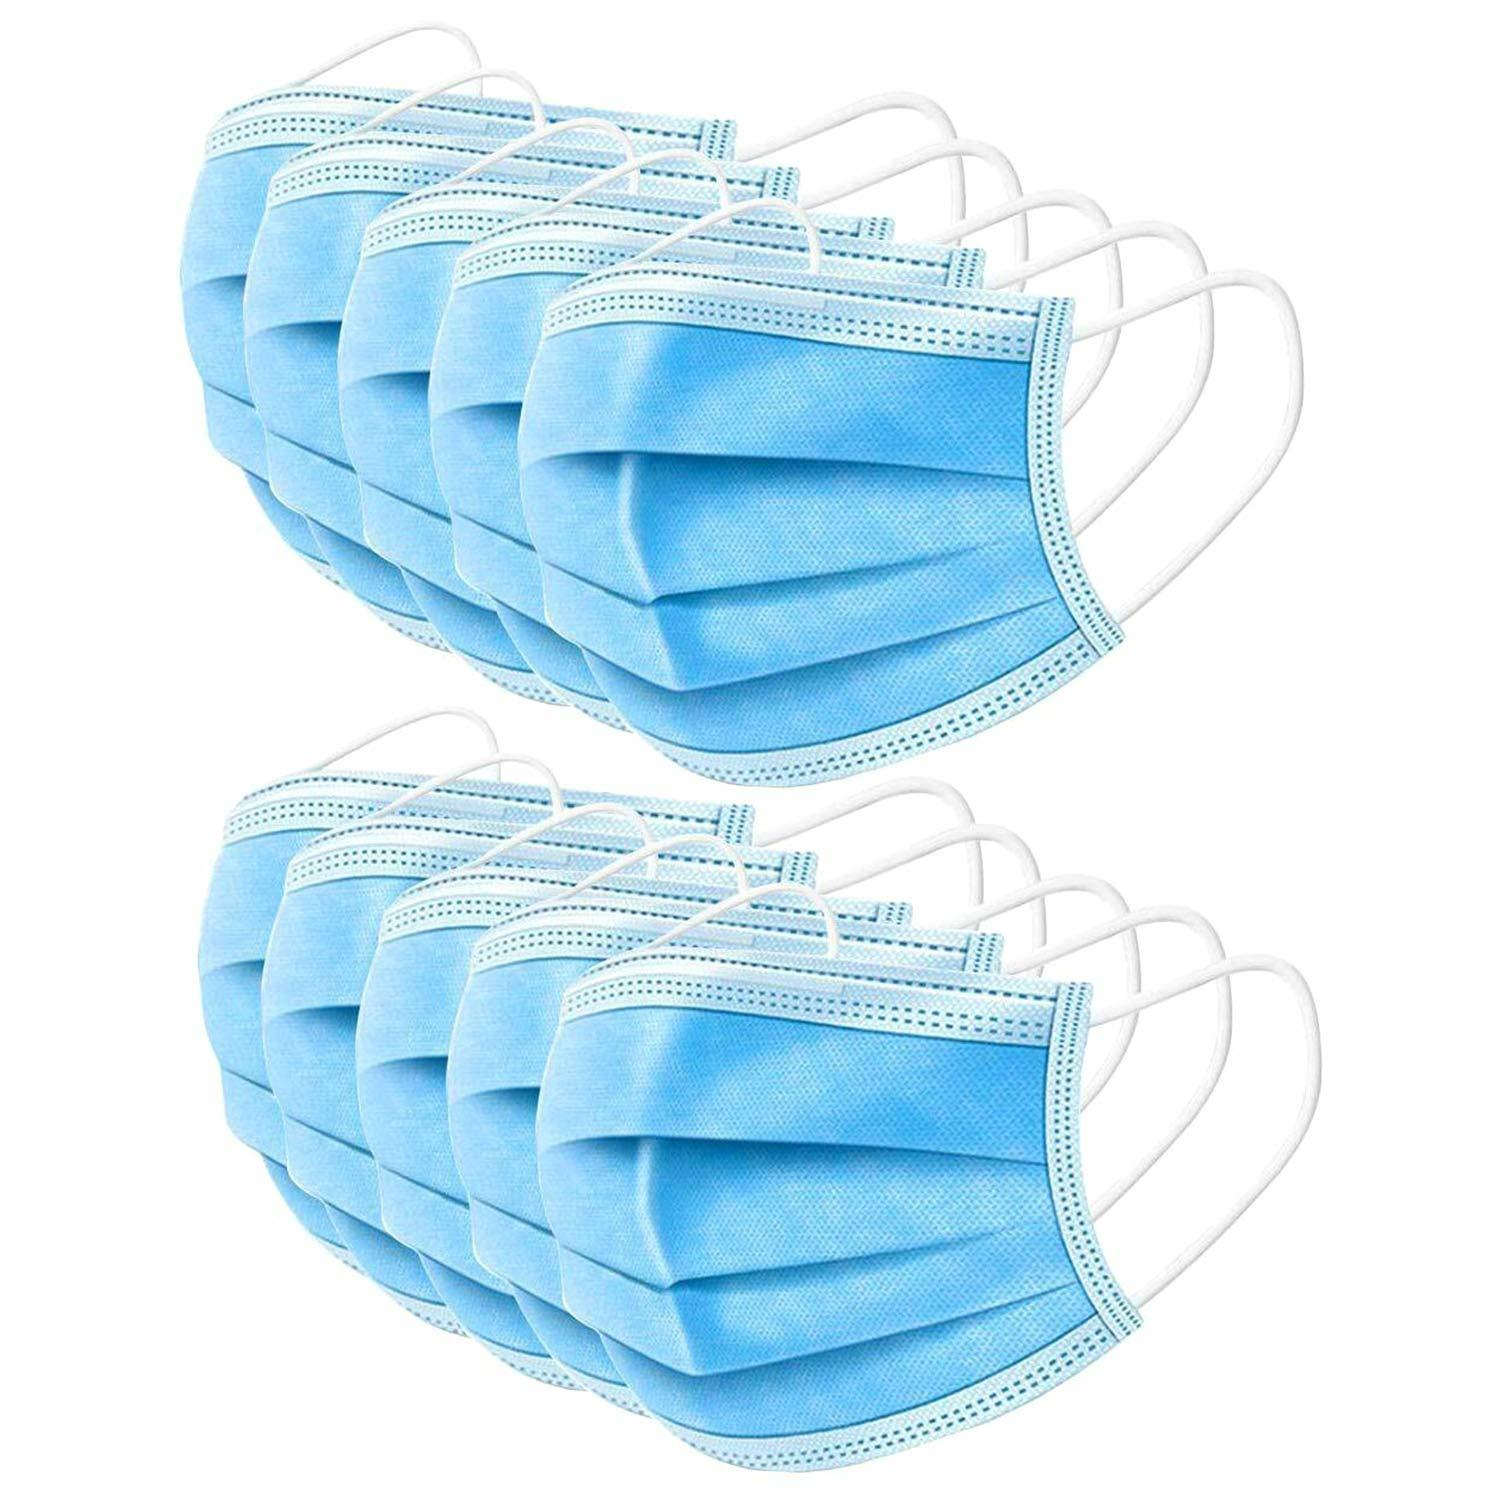 CE and FDA Certificated 50pcs Per Box of 3 Layers Non-woven Fabric Disposable Medical Mask Surgical Face Mask for Coronavirus